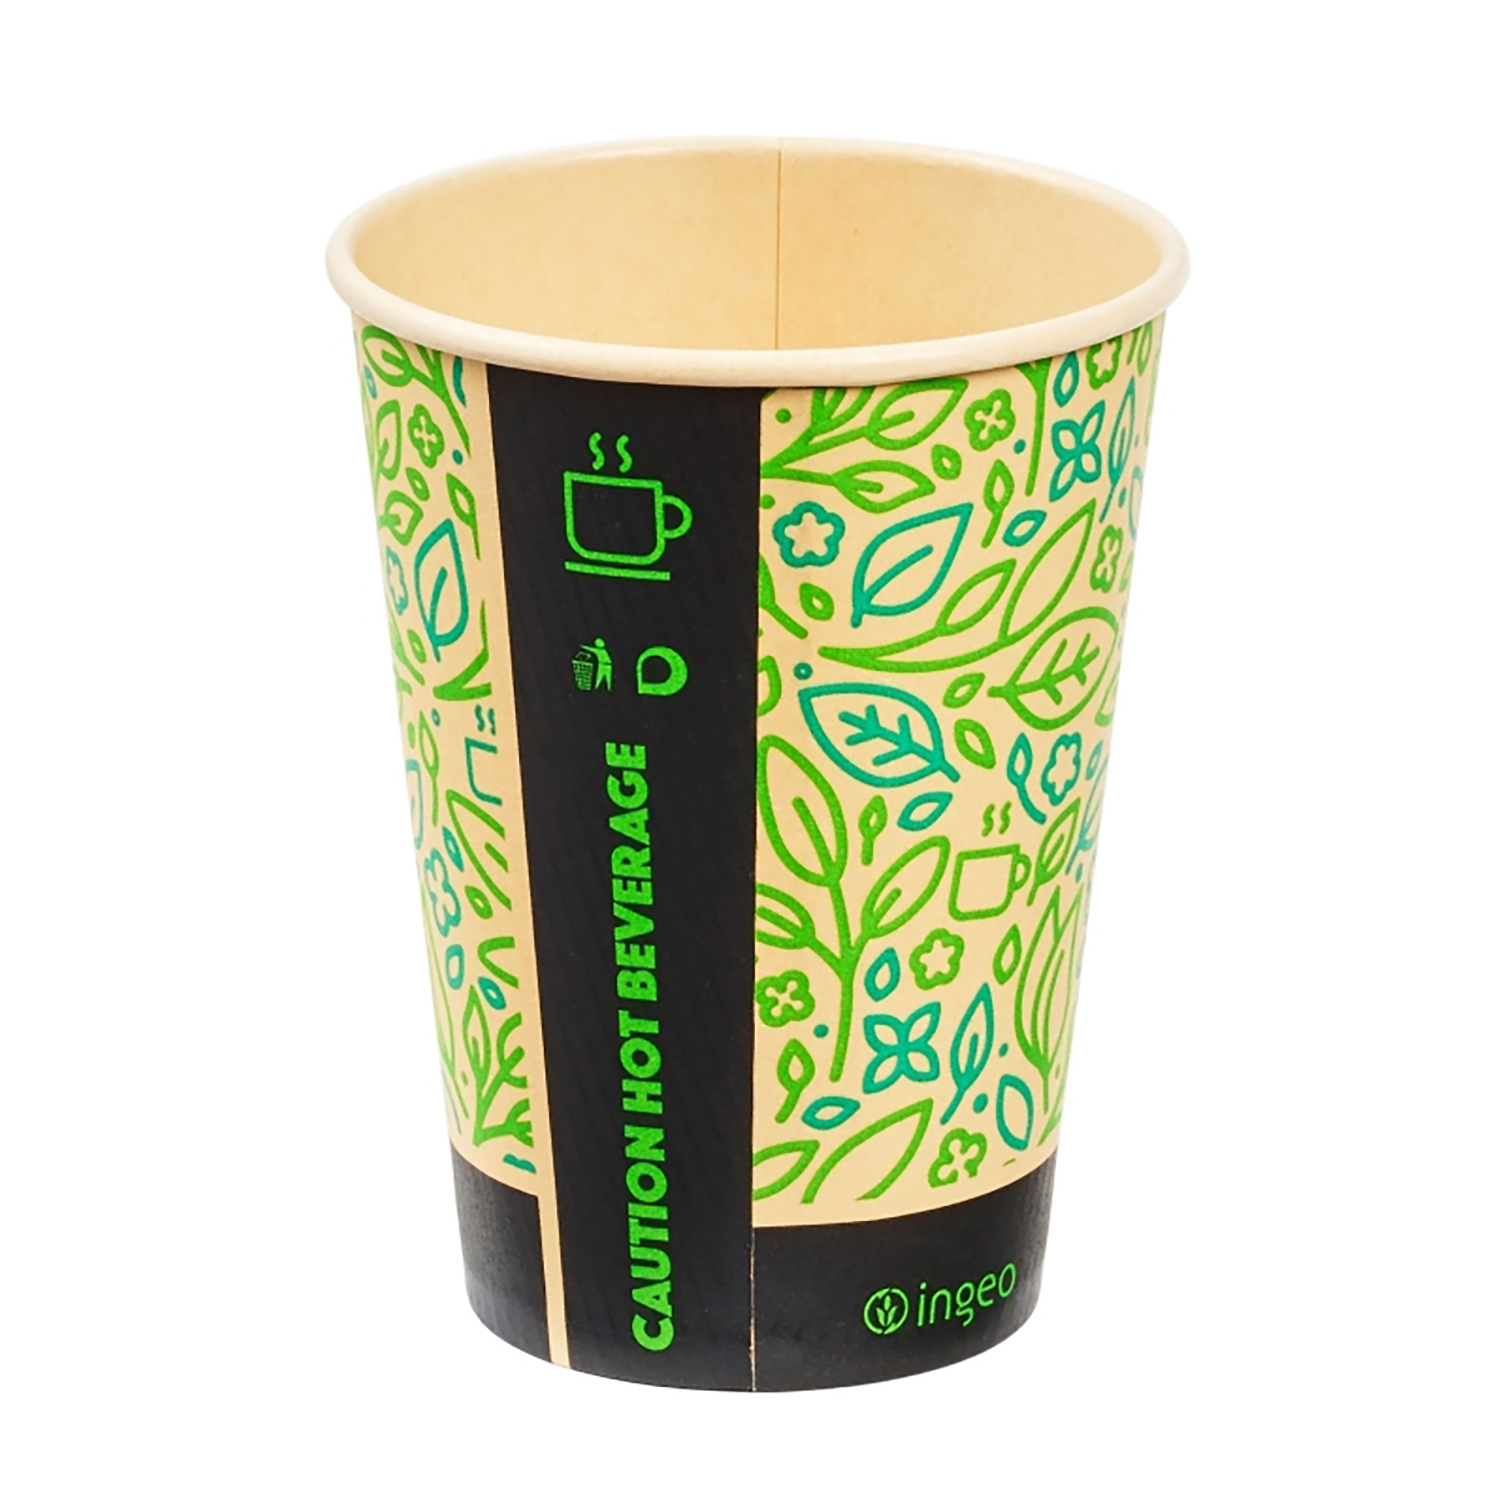 Domestic disposable cups or glasses or lids Ingeo Ultimate Eco Bamboo 8oz Biodegradable Disposable Cups Ref 0511223 [Pack 25]